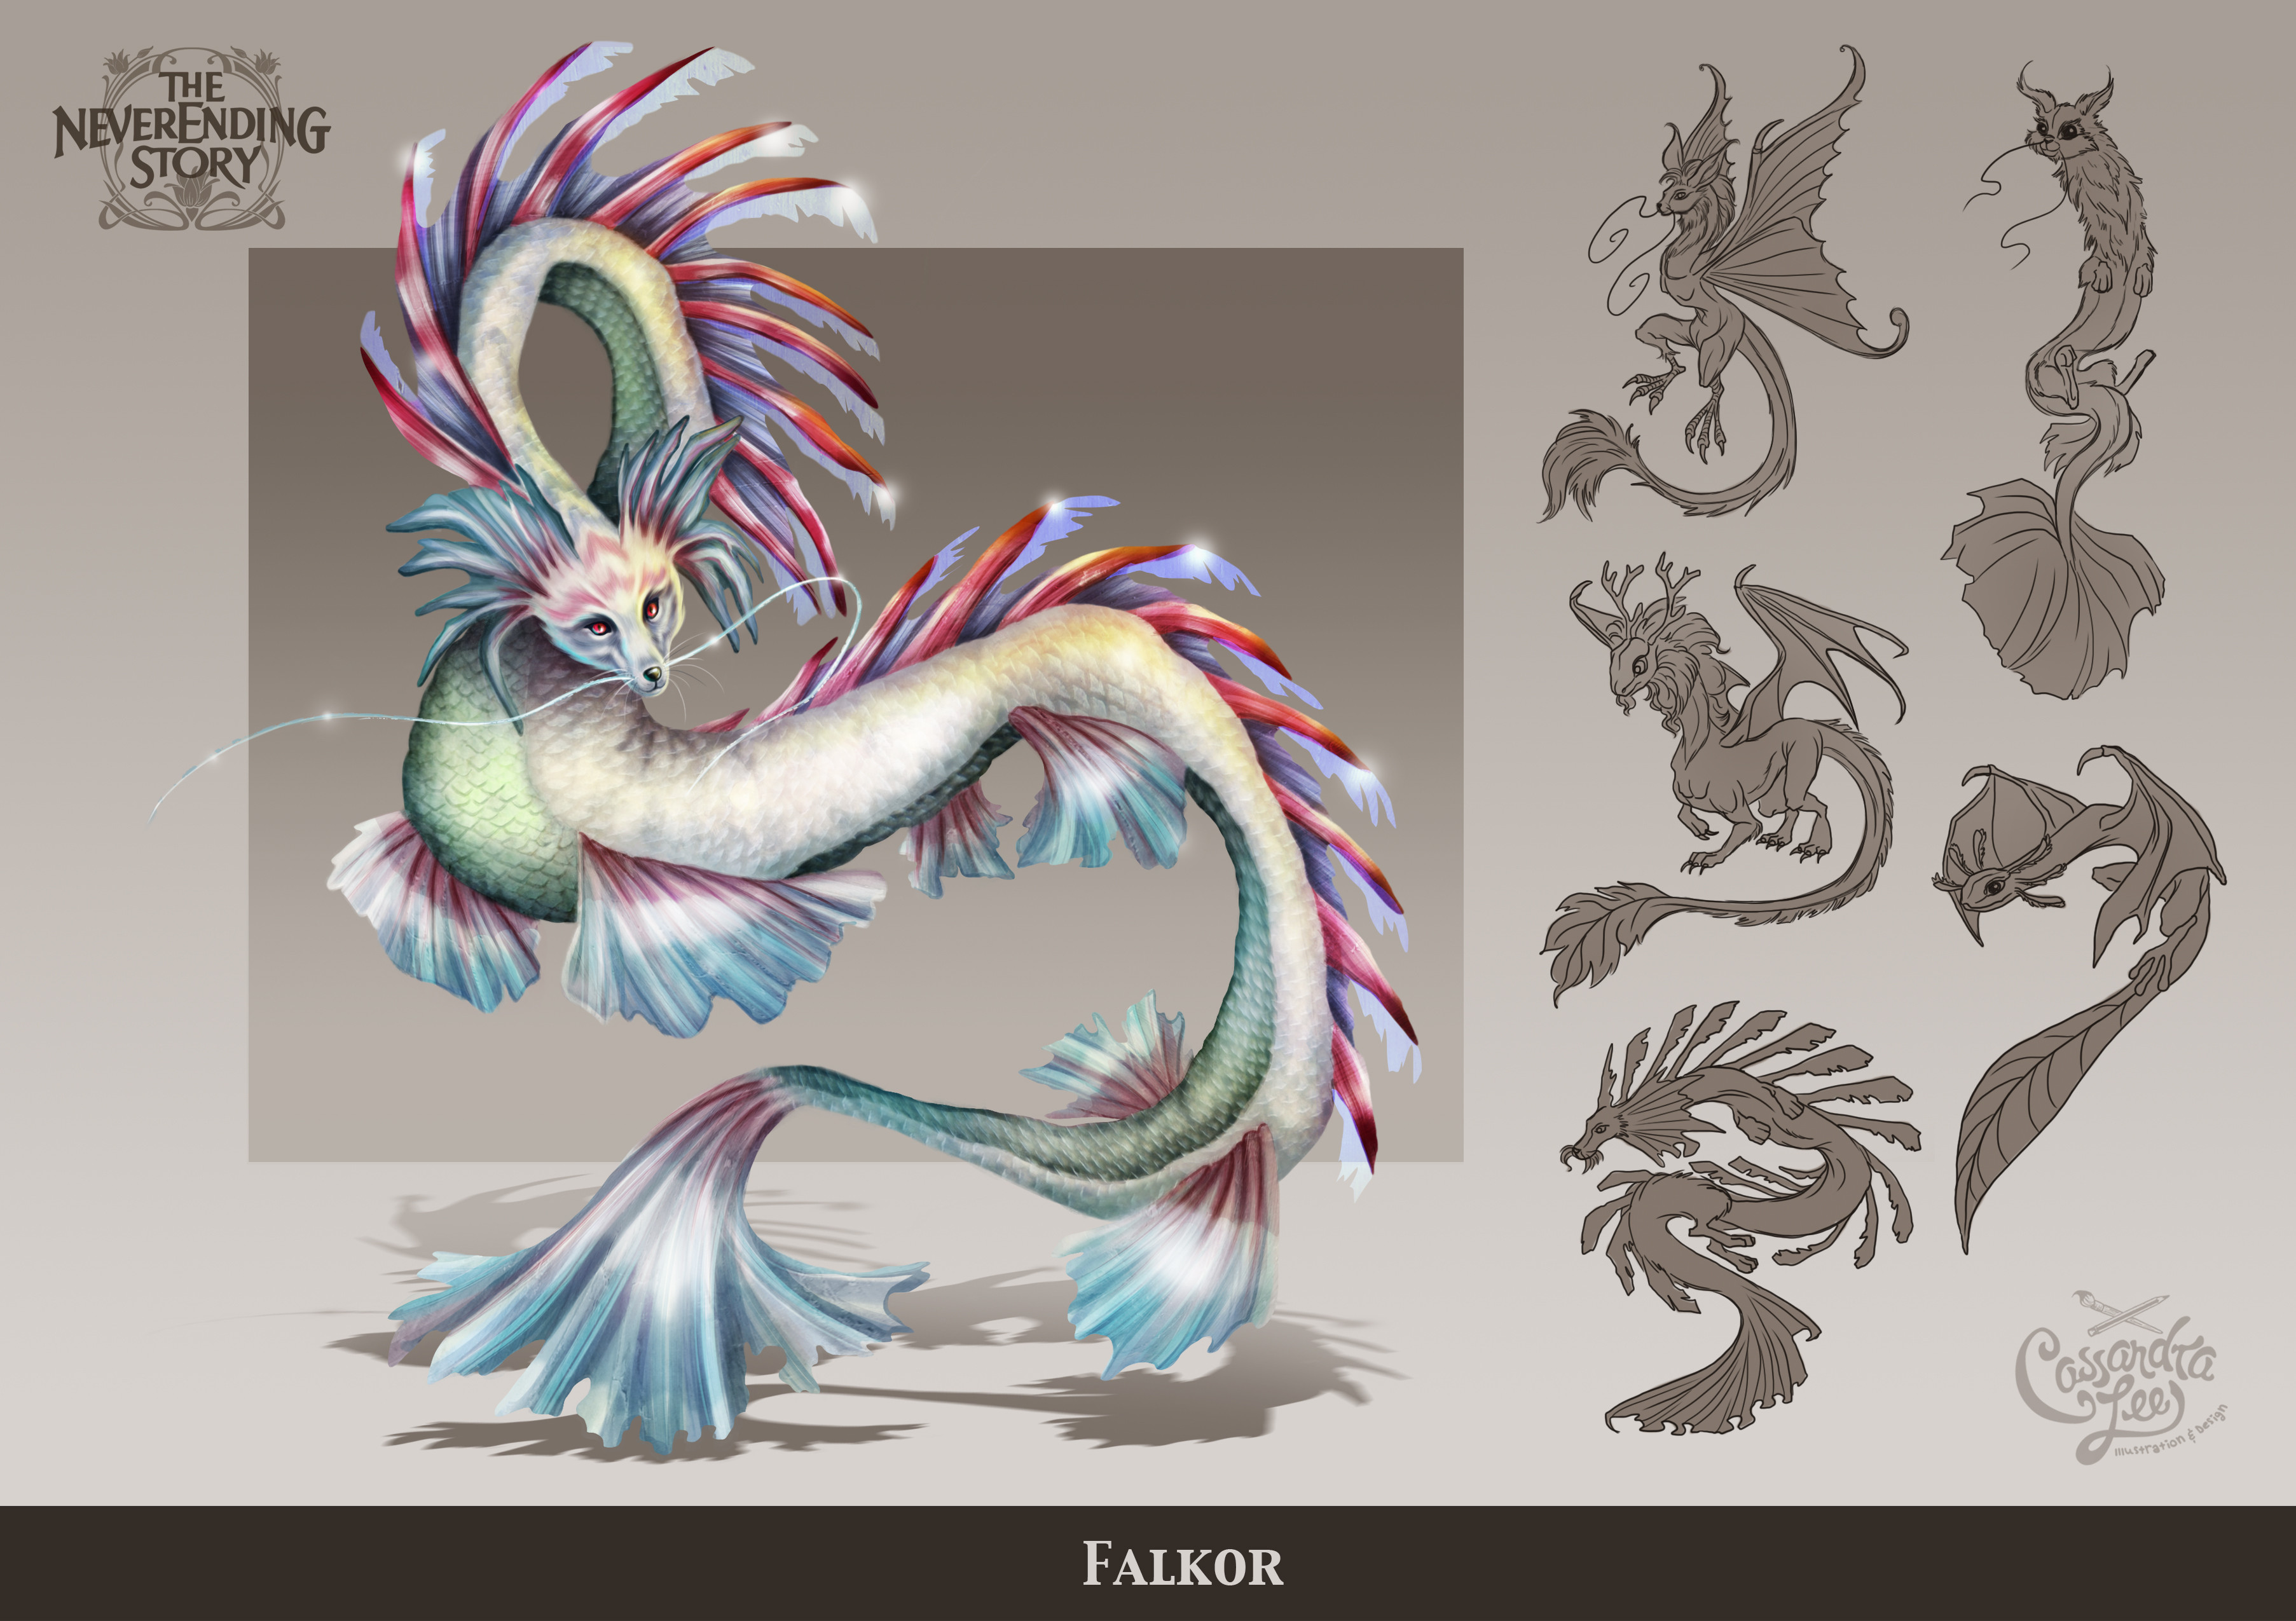 The redesign of Falkor the Luck Dragon